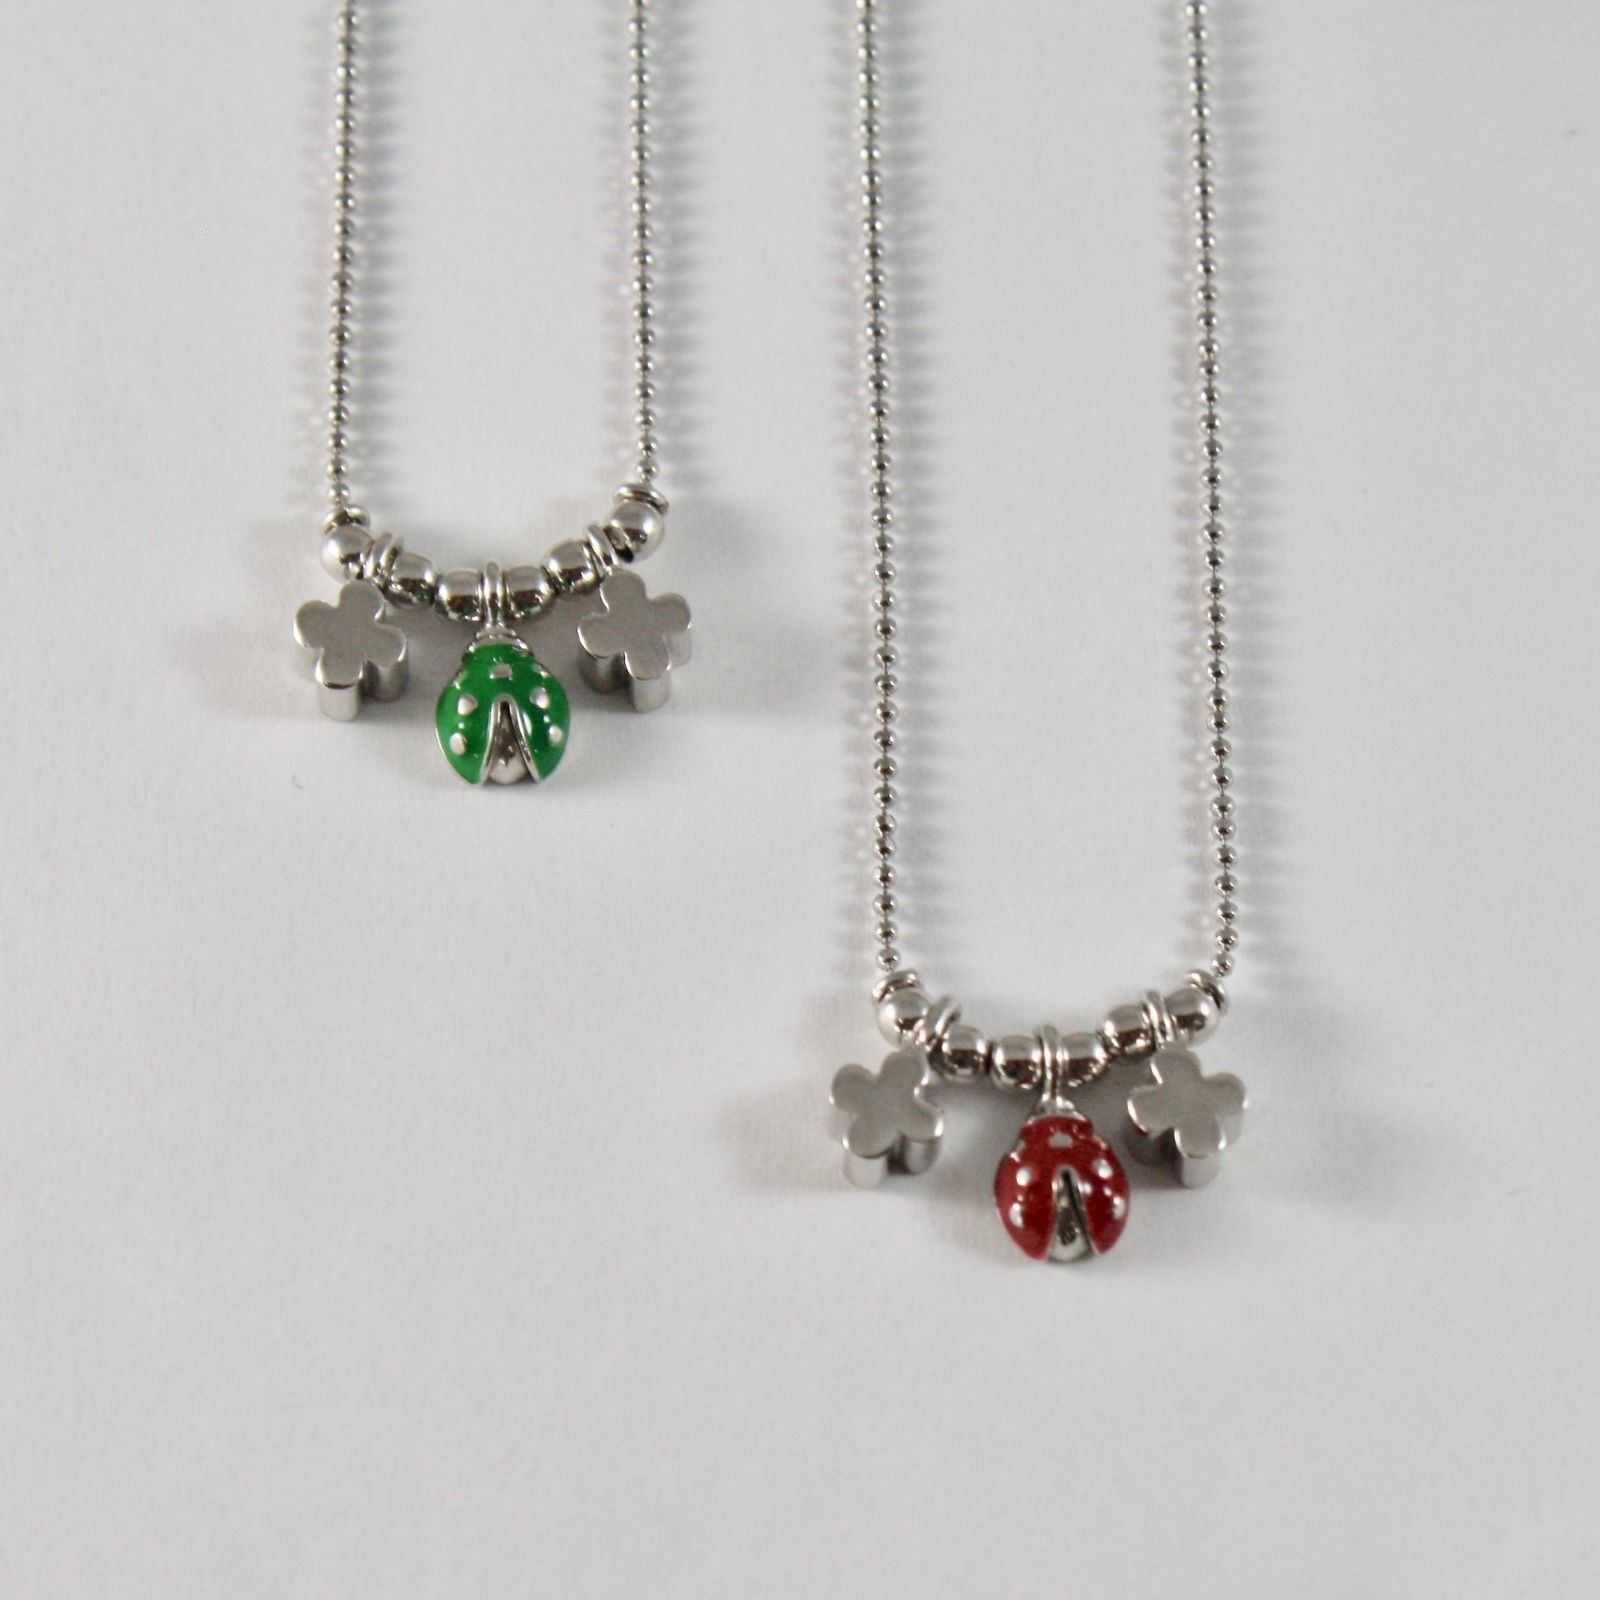 925 STERLING SILVER NECKLACE JACK&CO WITH LADYBUG GLAZED AND FOUR-LEAF CLOVER 45